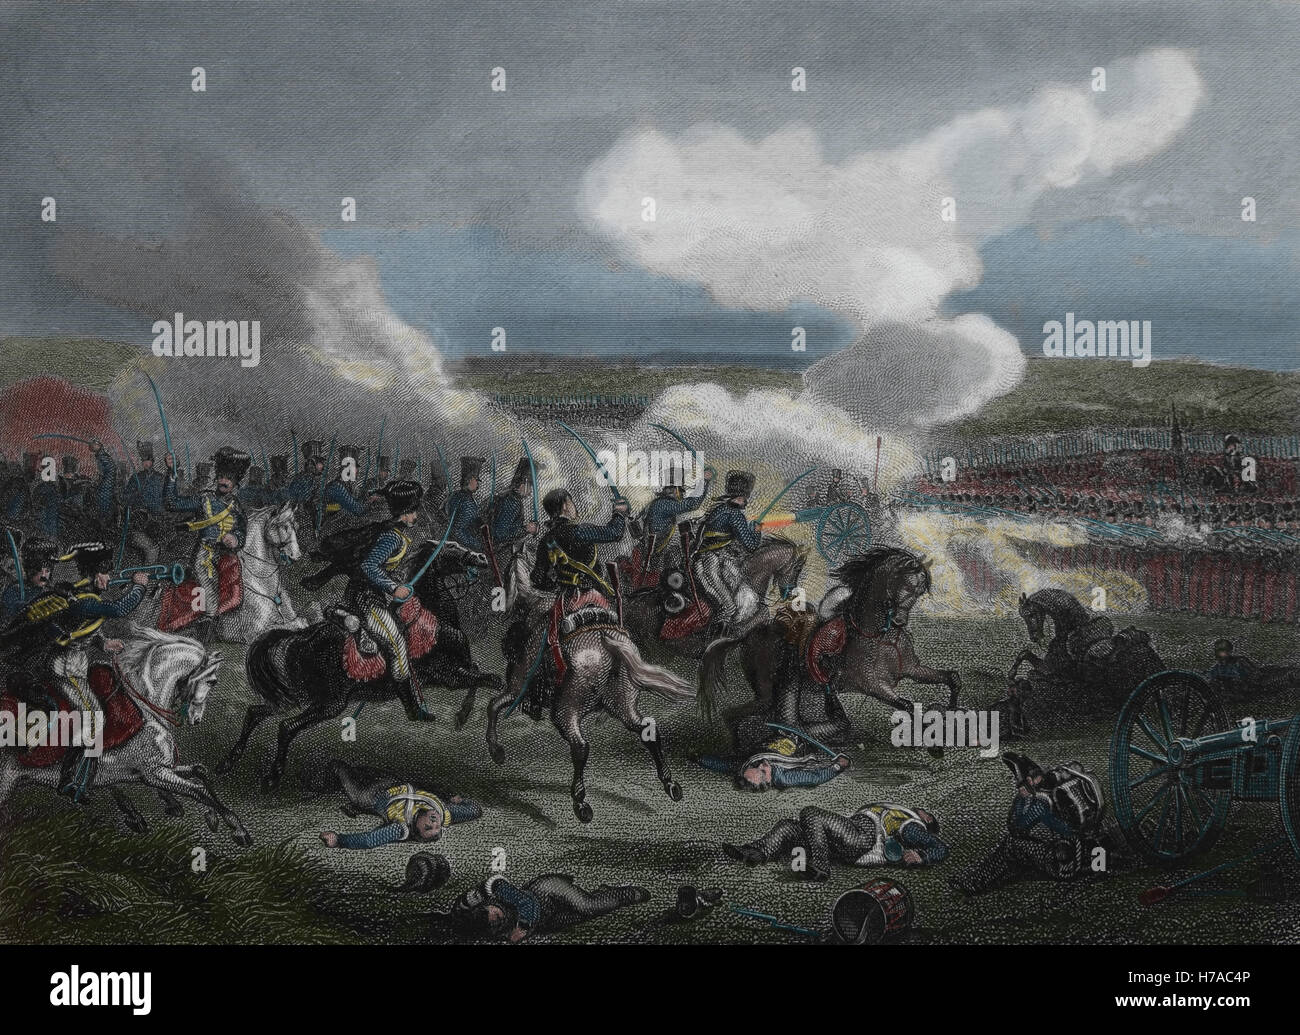 Battle of Fuentes de Onoro (3-5 May 1811). British-Portugal Army and French Empire. Peninsular War. Spain. Engraving. - Stock Image